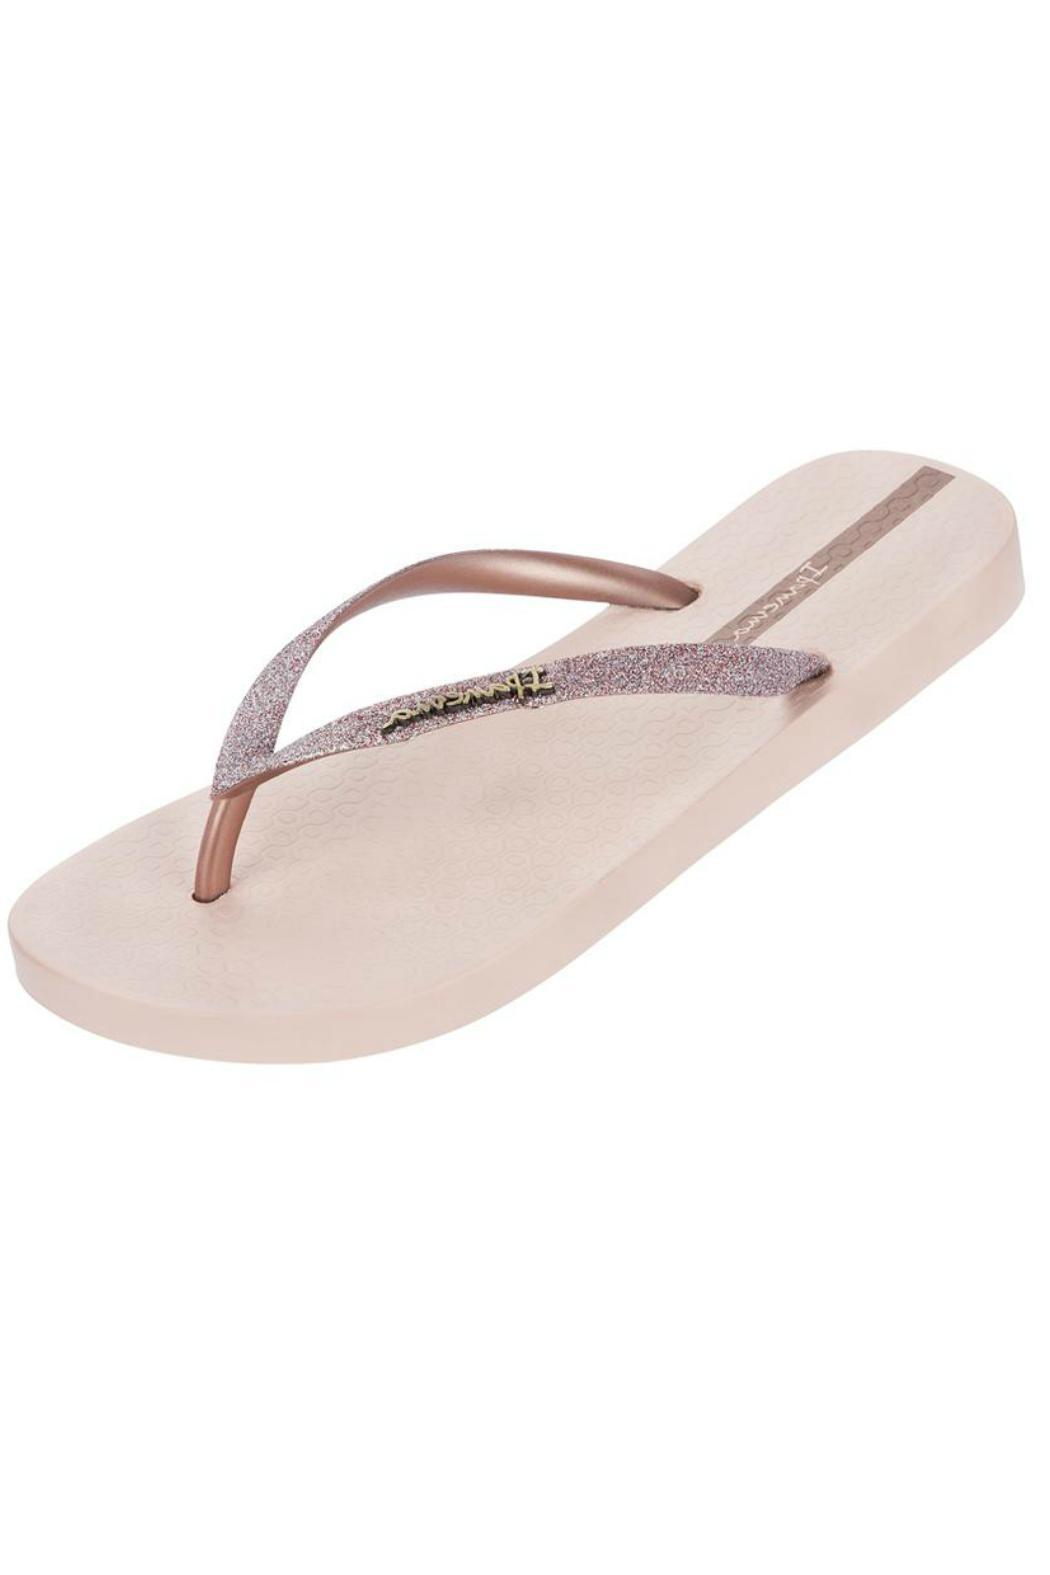 c52869beb647aa Ipanema Glitter Flip-Flops from Pennsylvania by Well-Heeled Boutique ...